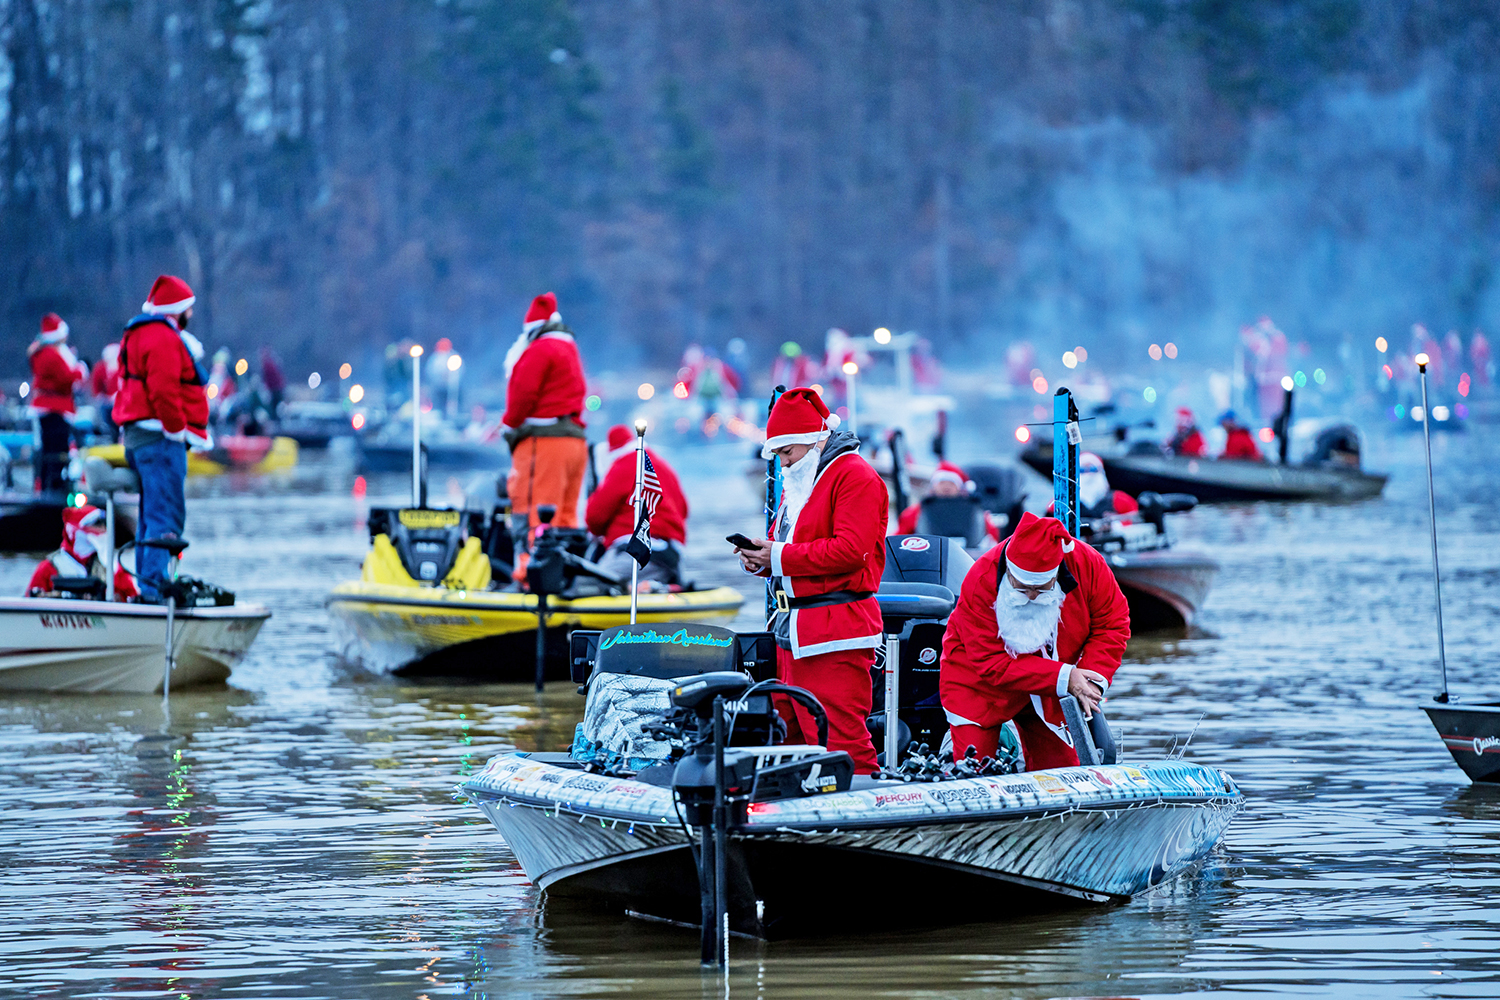 World record-setting event featured 298 Santa suit-wearing anglers fishing to make Christmas possible for children in need.